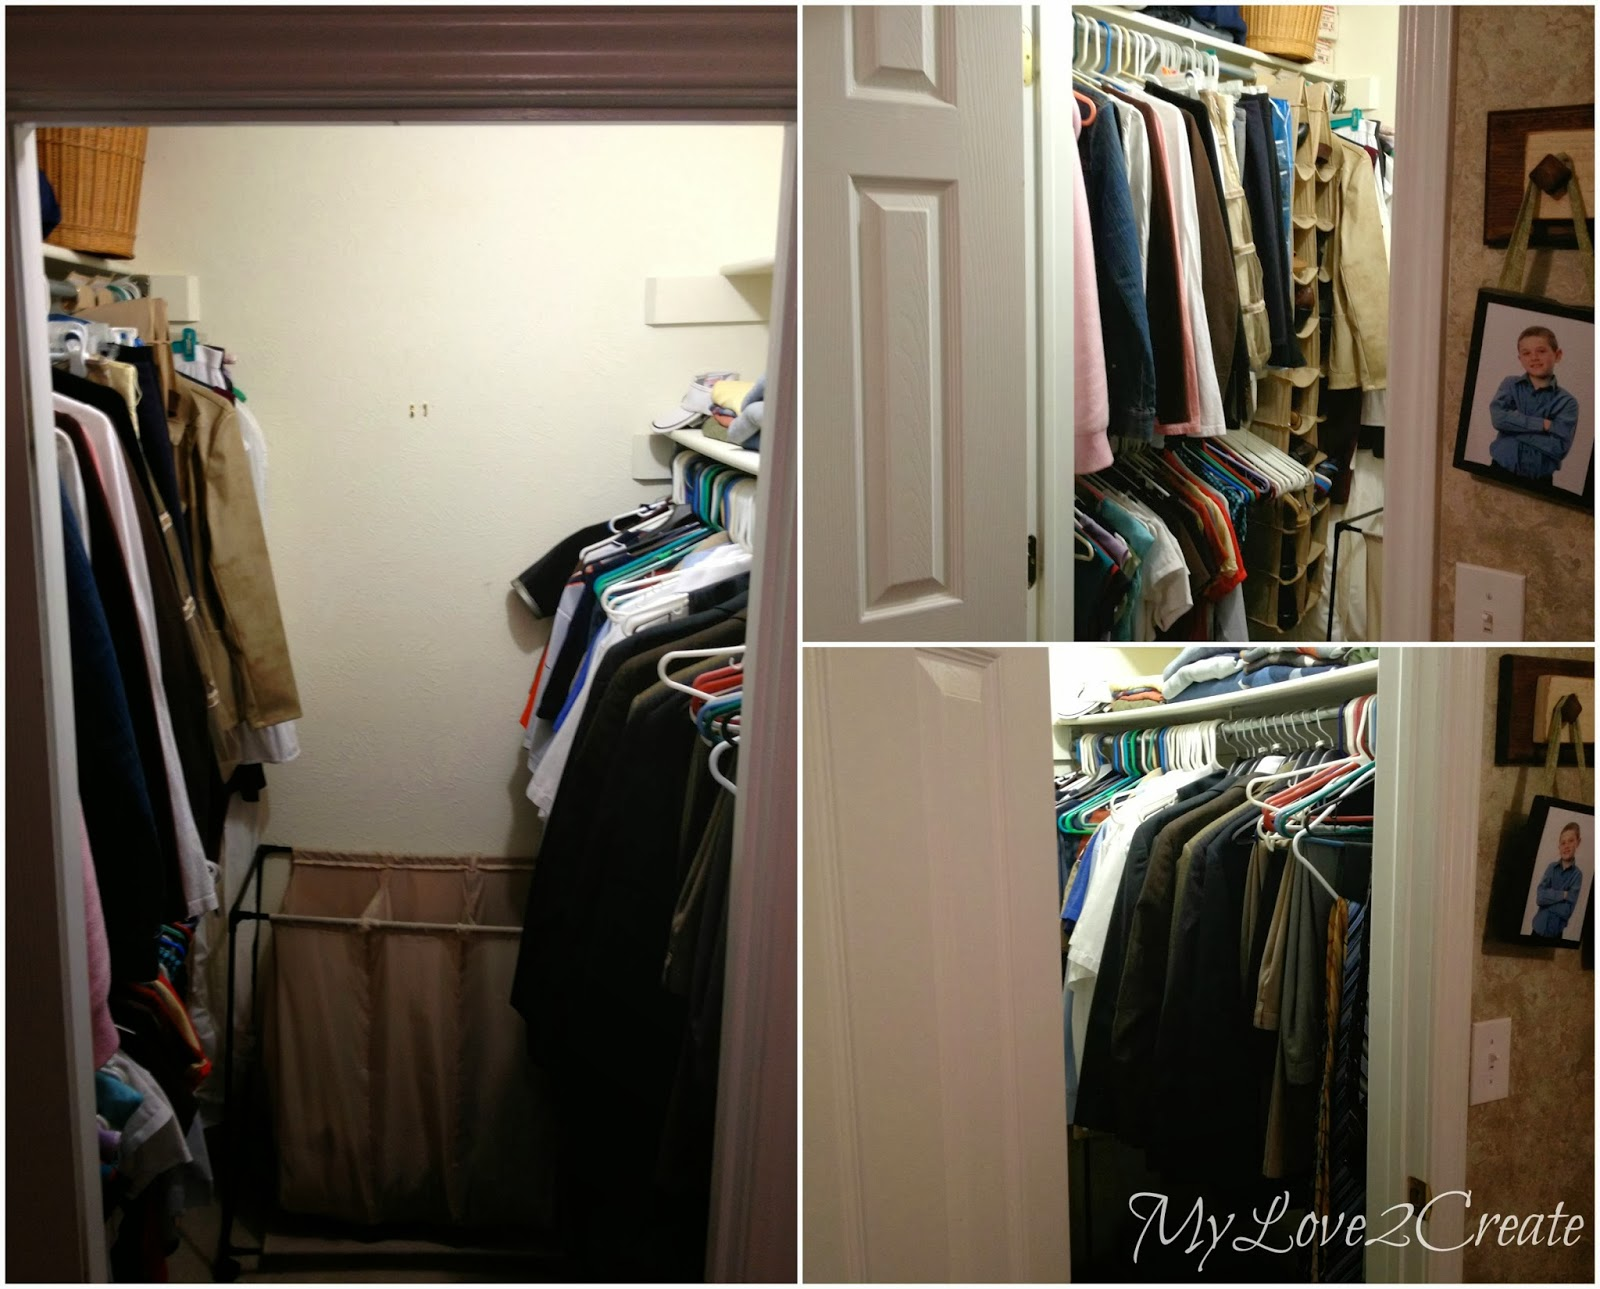 MyLove2Create, Master Closet Makeover Plans